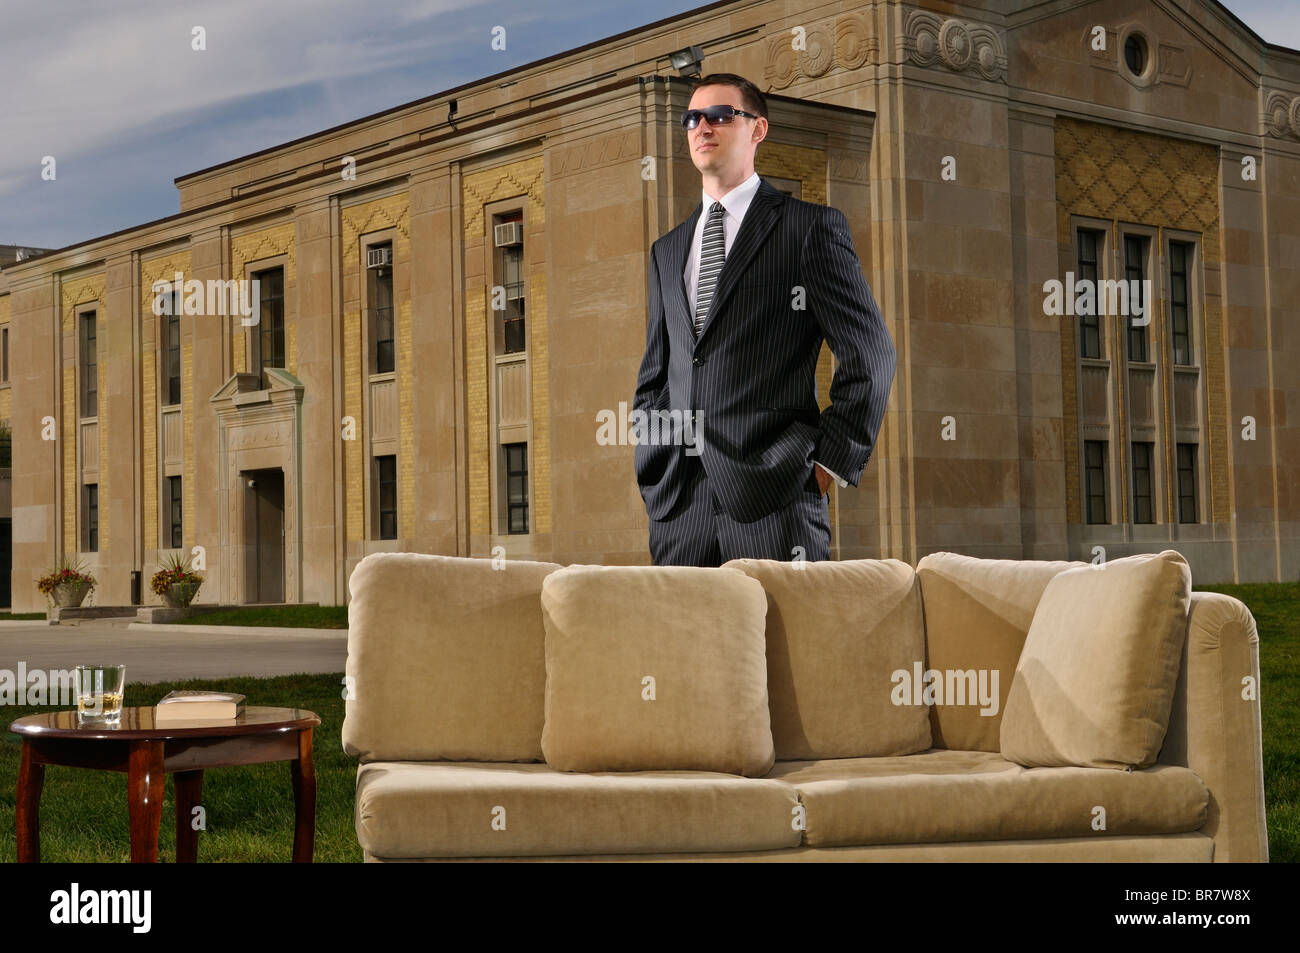 wealthy-young-man-in-suit-standing-behin